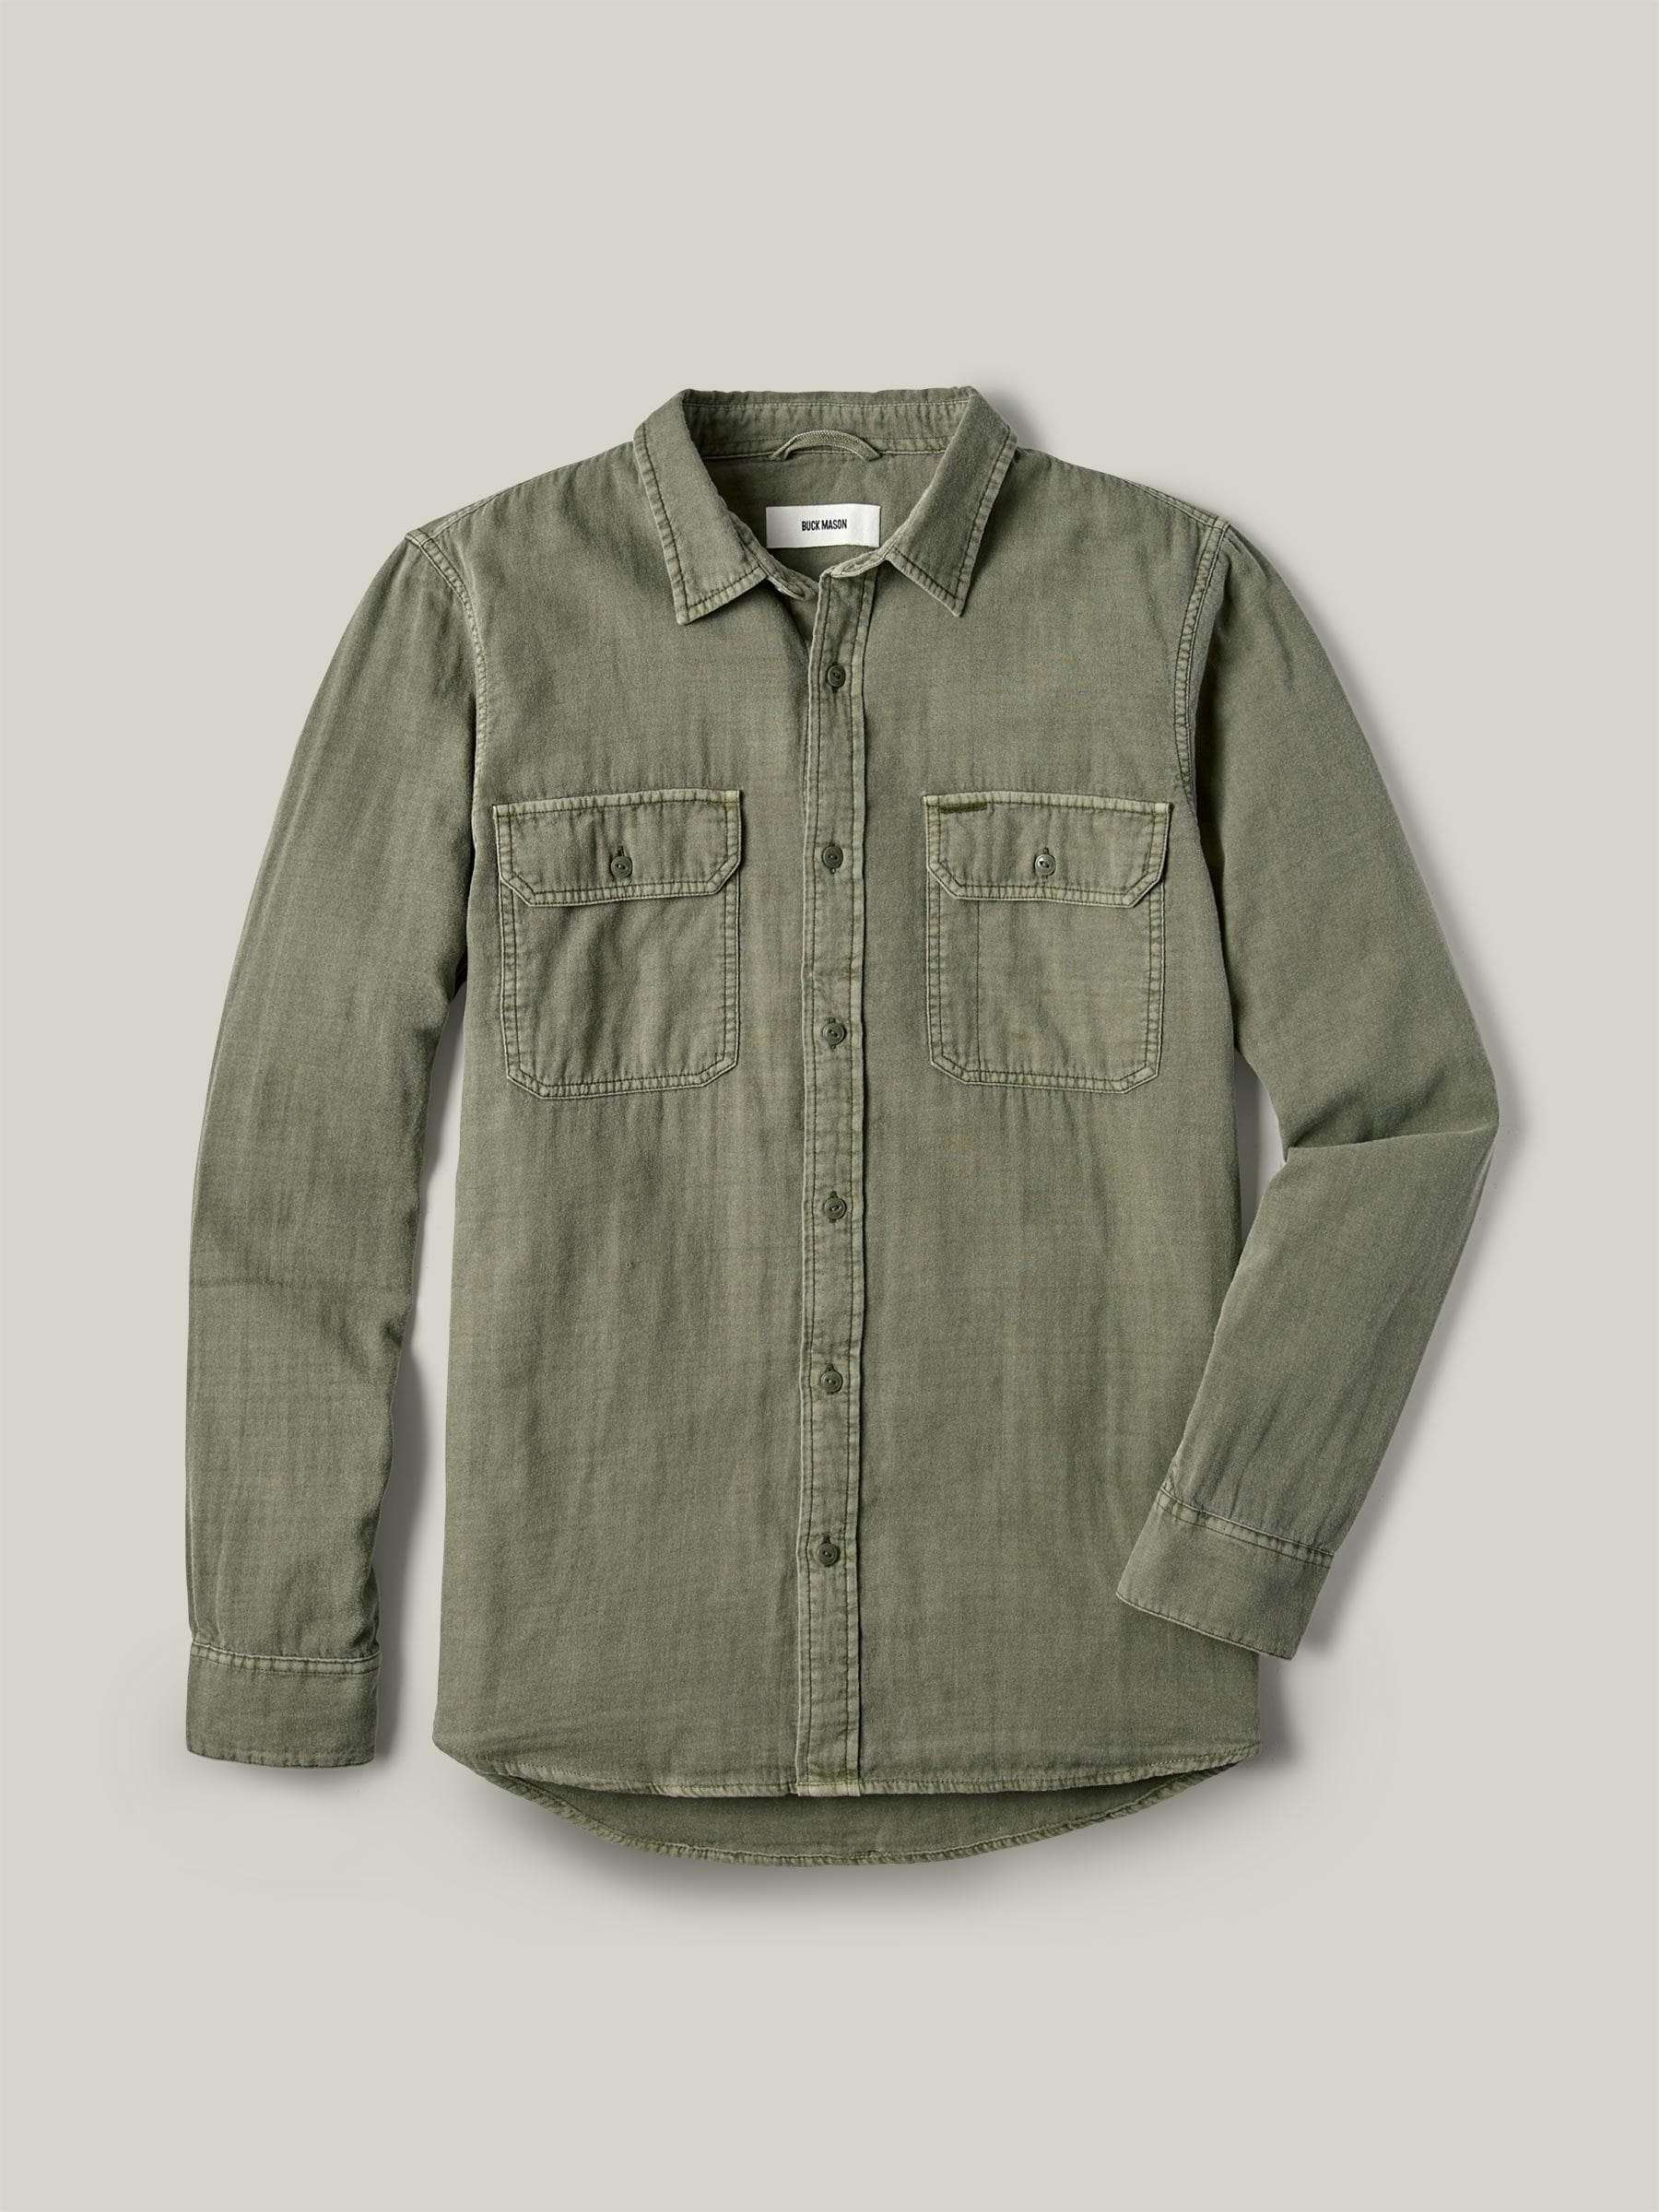 Buck Mason - Faded Army Double Weave Vintage Two Pocket Shirt